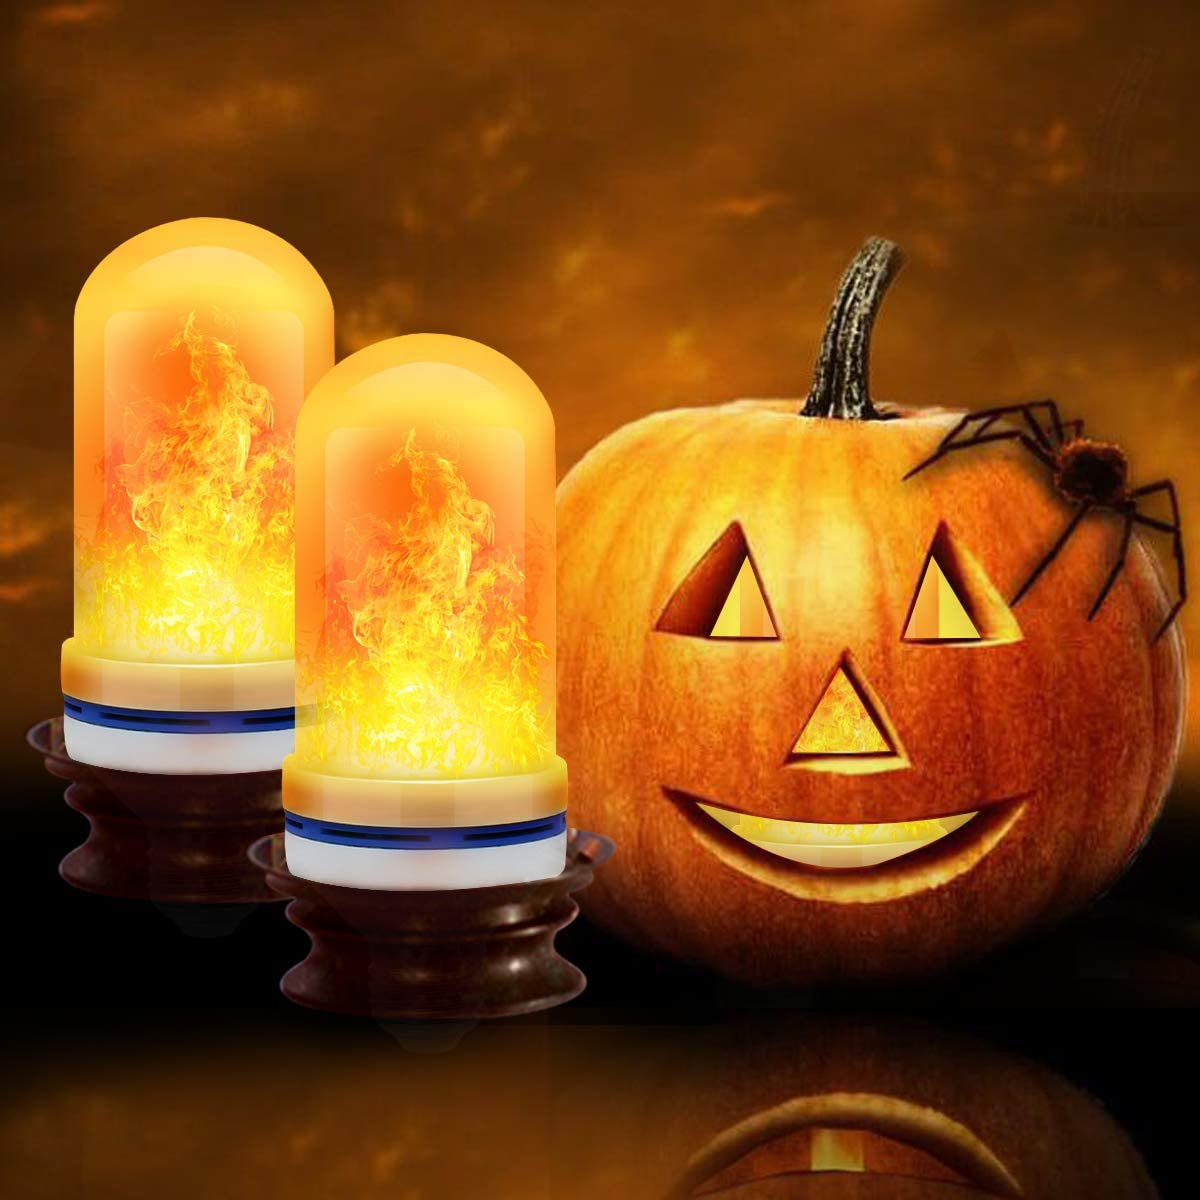 CPPSLEE E26 Base LED Bulb LED Flame Effect Light Bulb 4 Modes with Upside Down Effect 6 Pack Flame Bulbs for Halloween Decorations //Hotel//Bar//Christmas Party Decoration